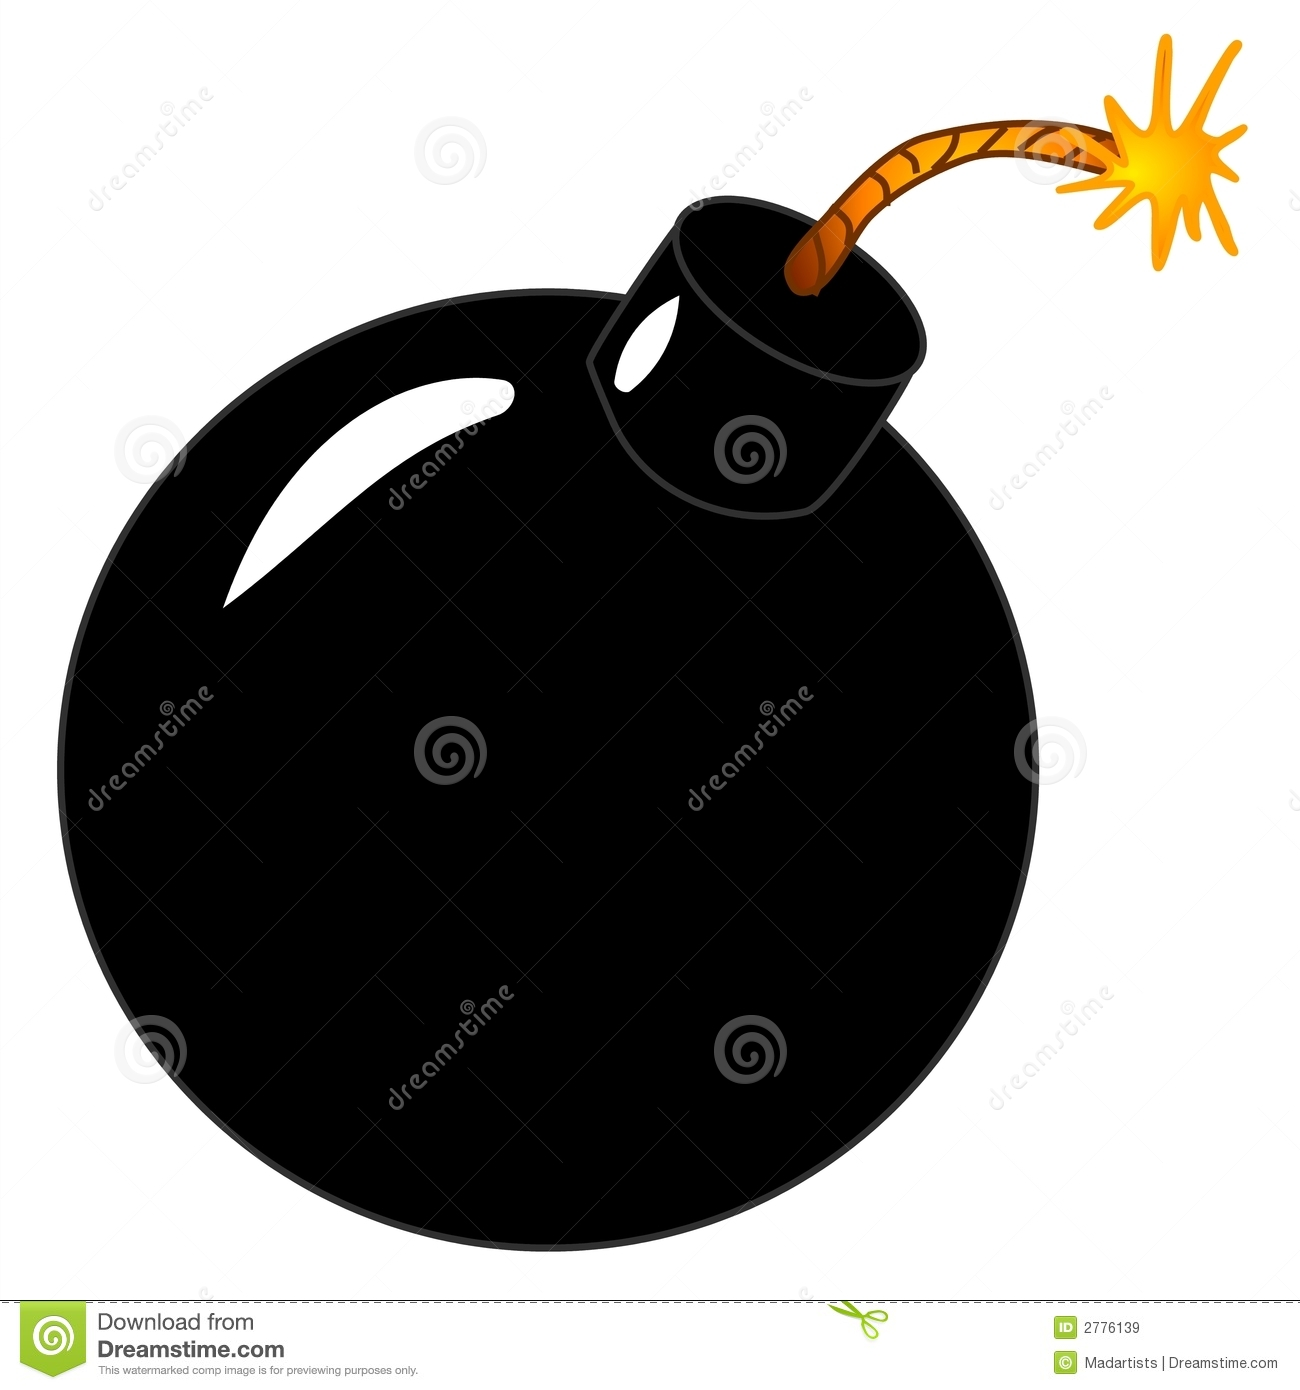 Classic Cartoon Style Black Round Bomb Lit On The End And Ready To